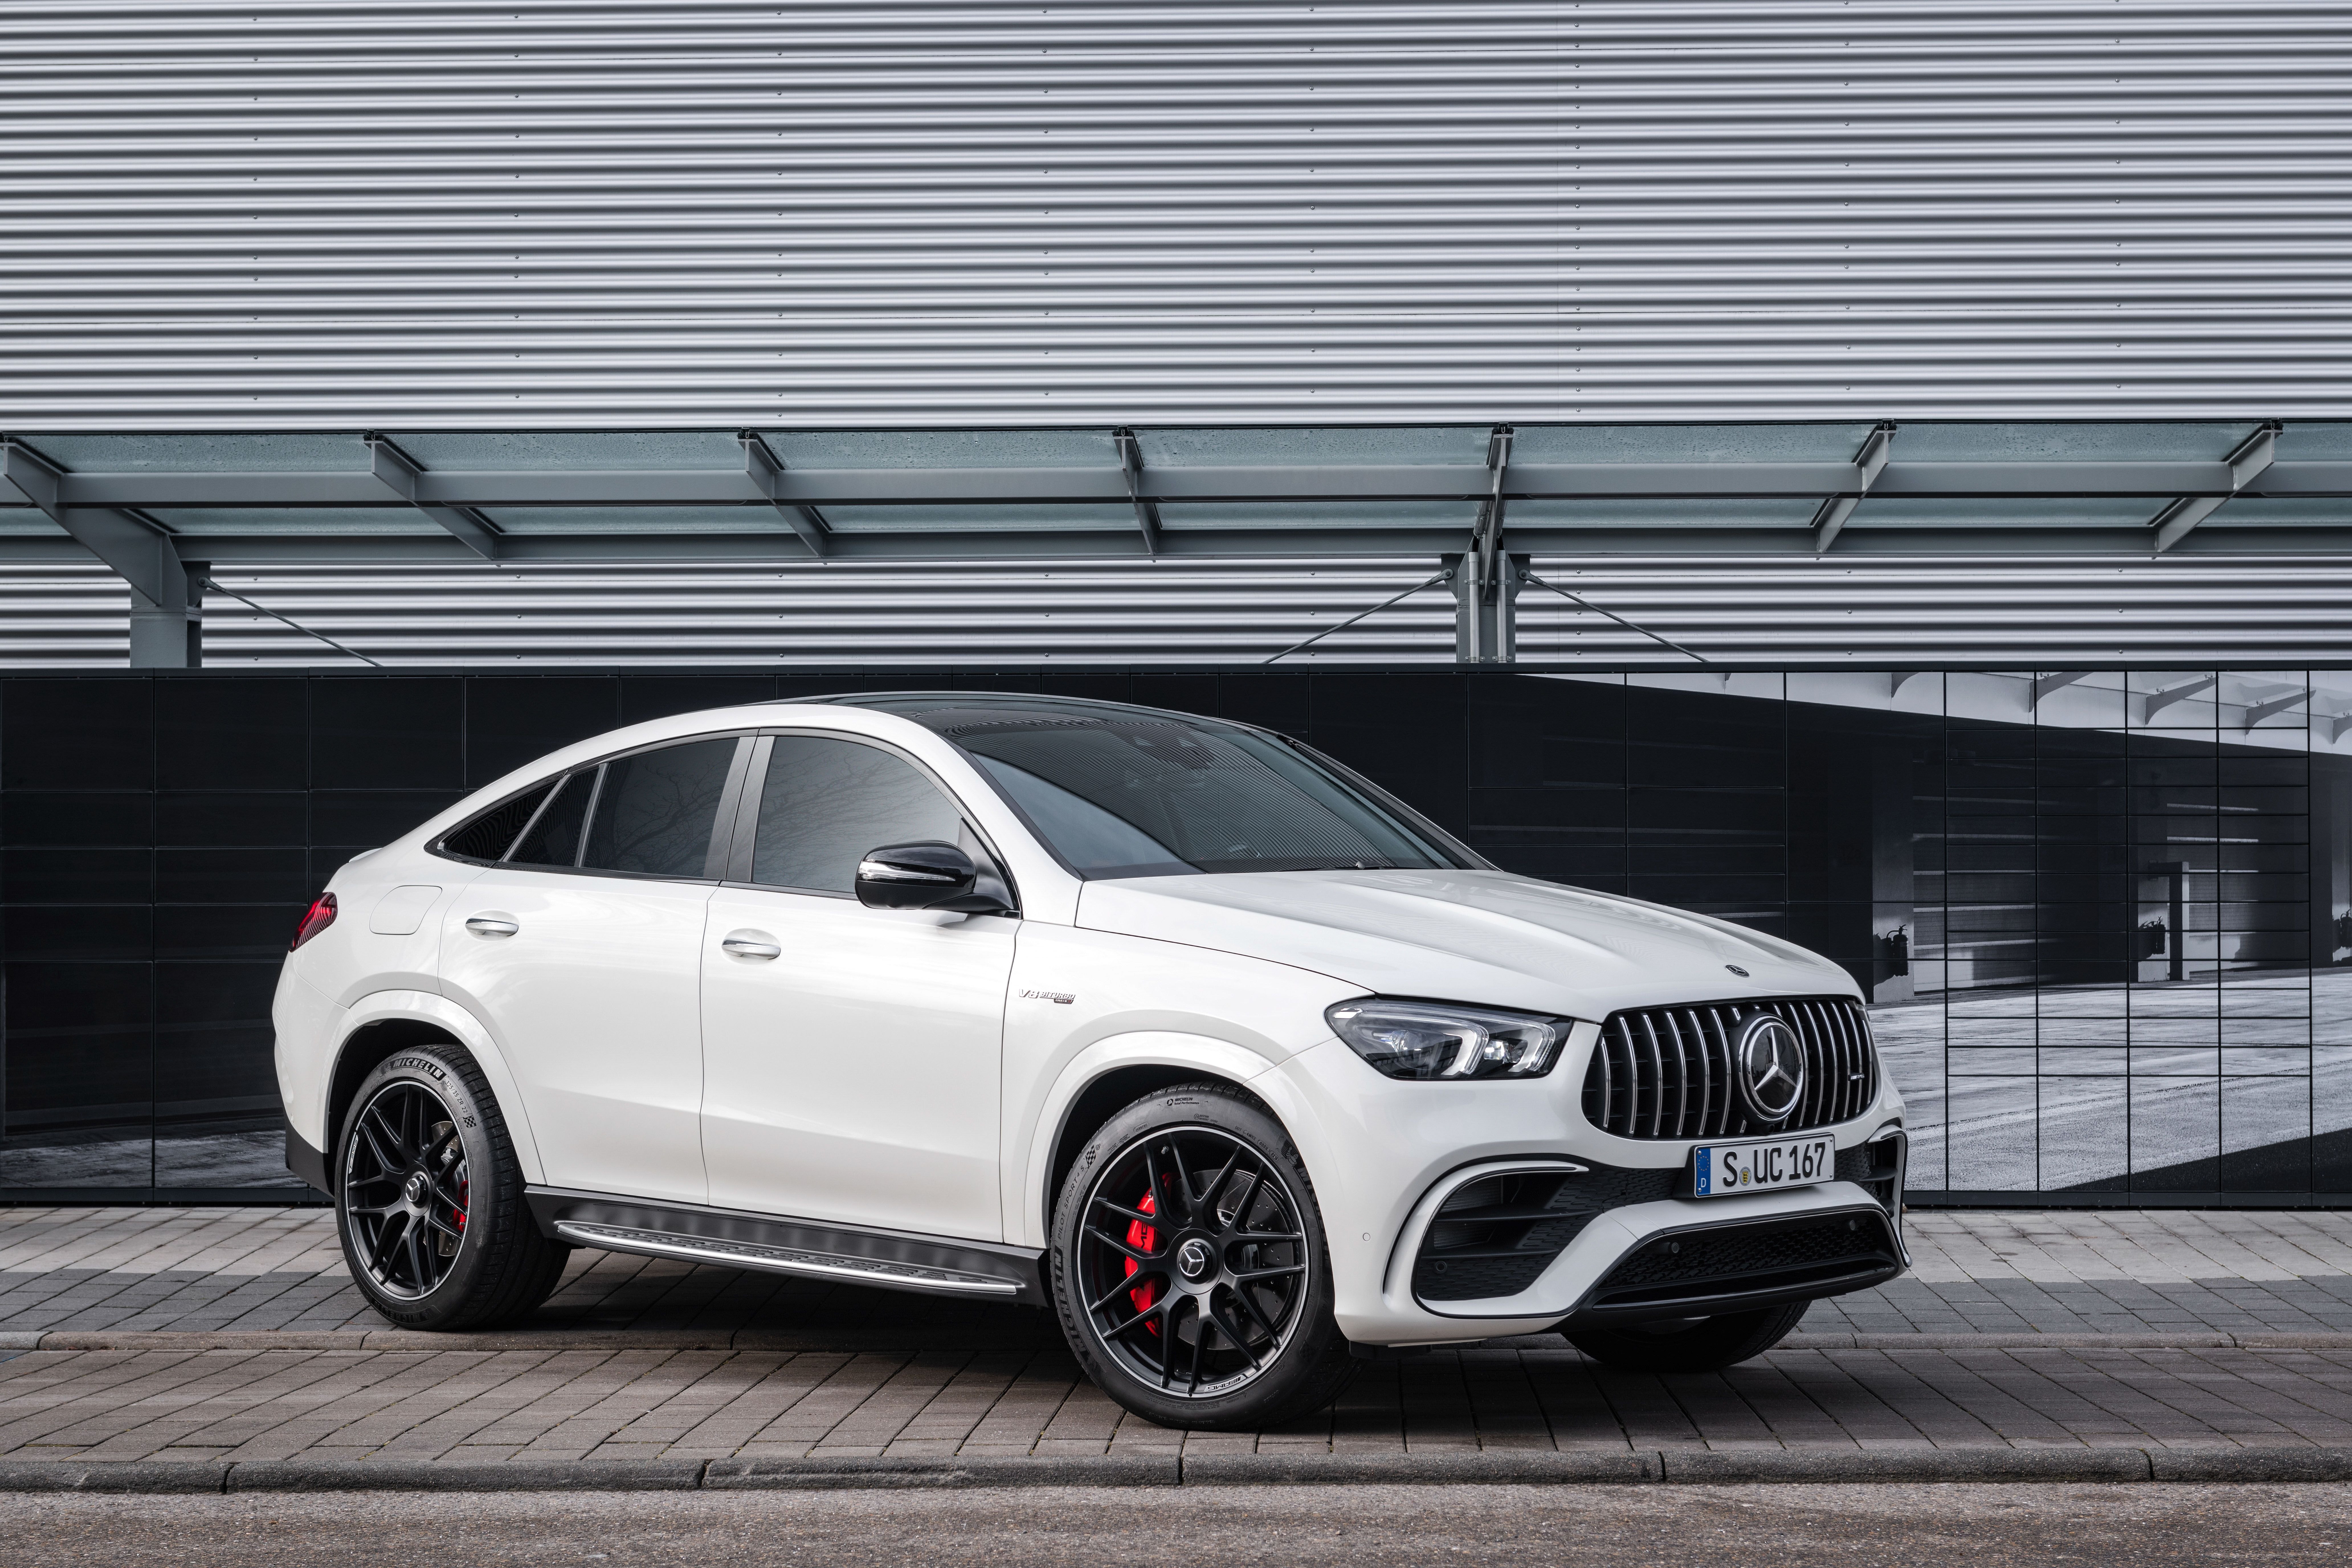 Mercedes Amg Goes Big Once Again With 603 Hp Gle63 S Coupe